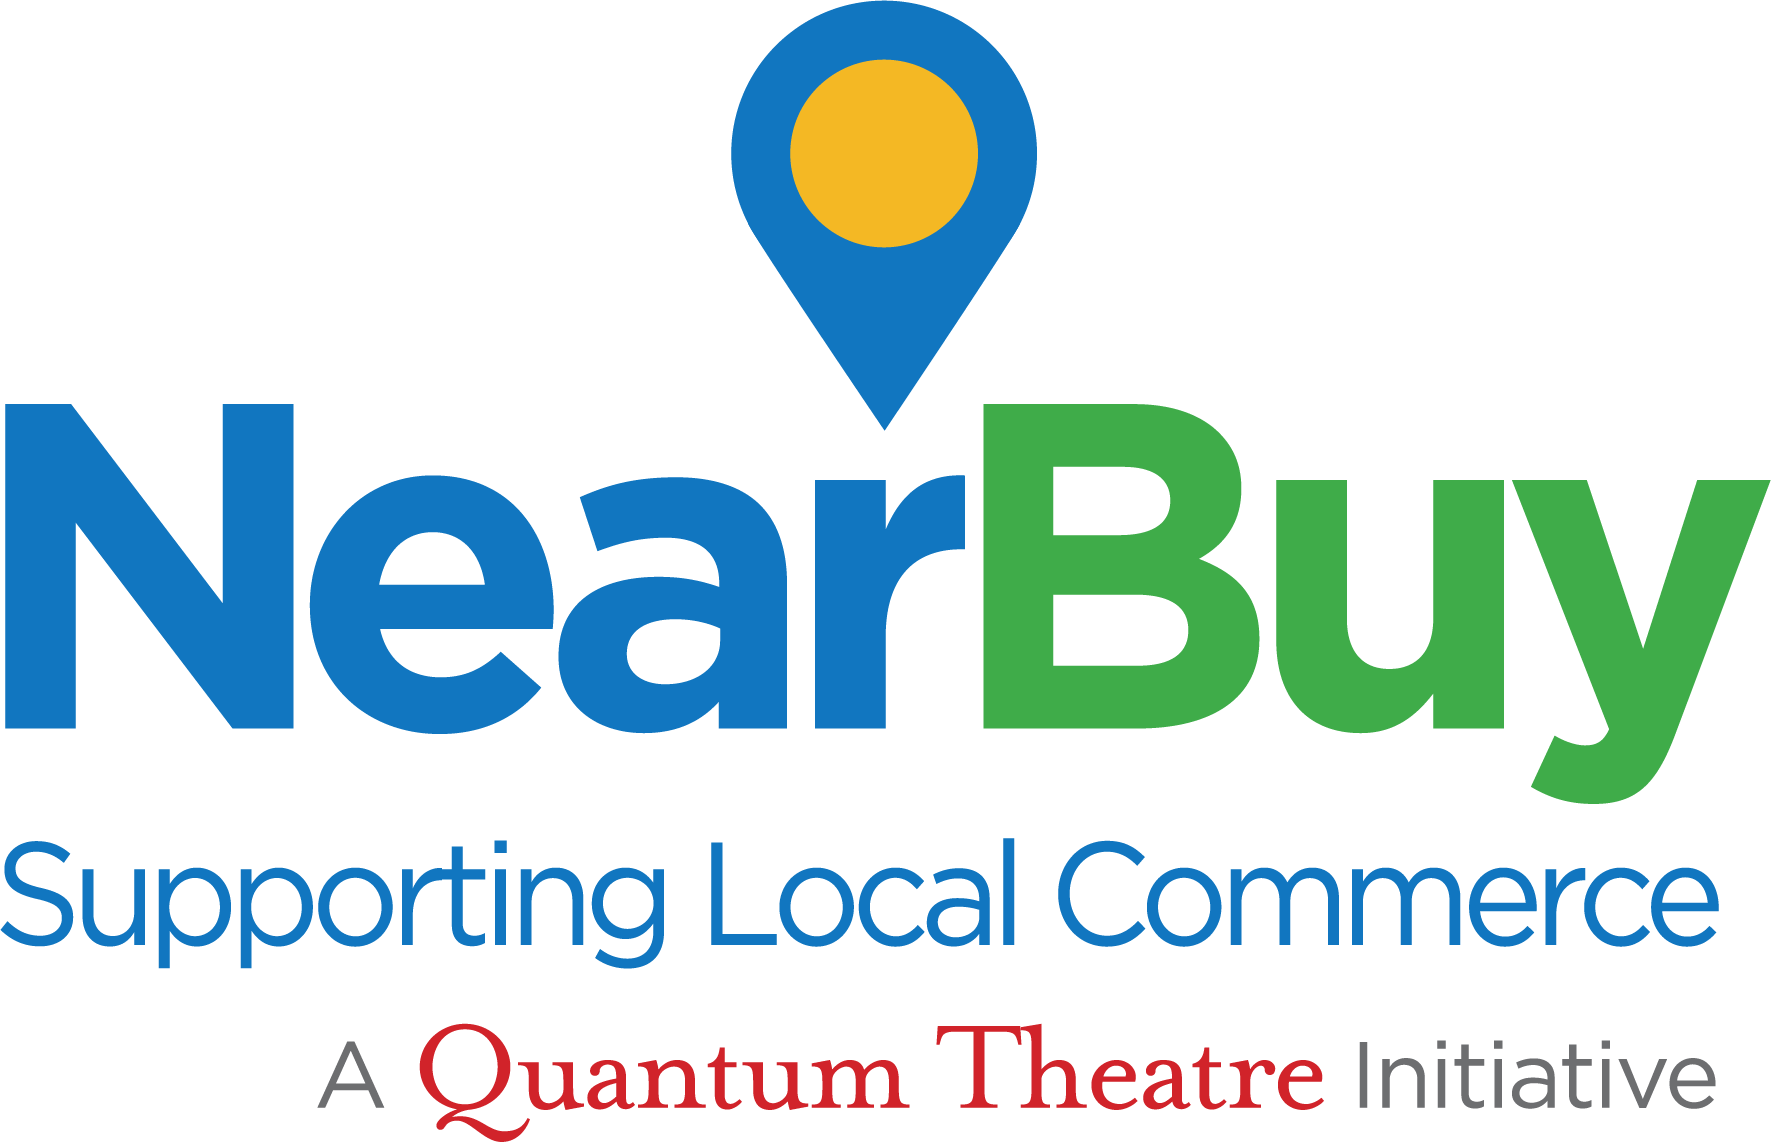 Near Buy logo: Supporting Local commerce